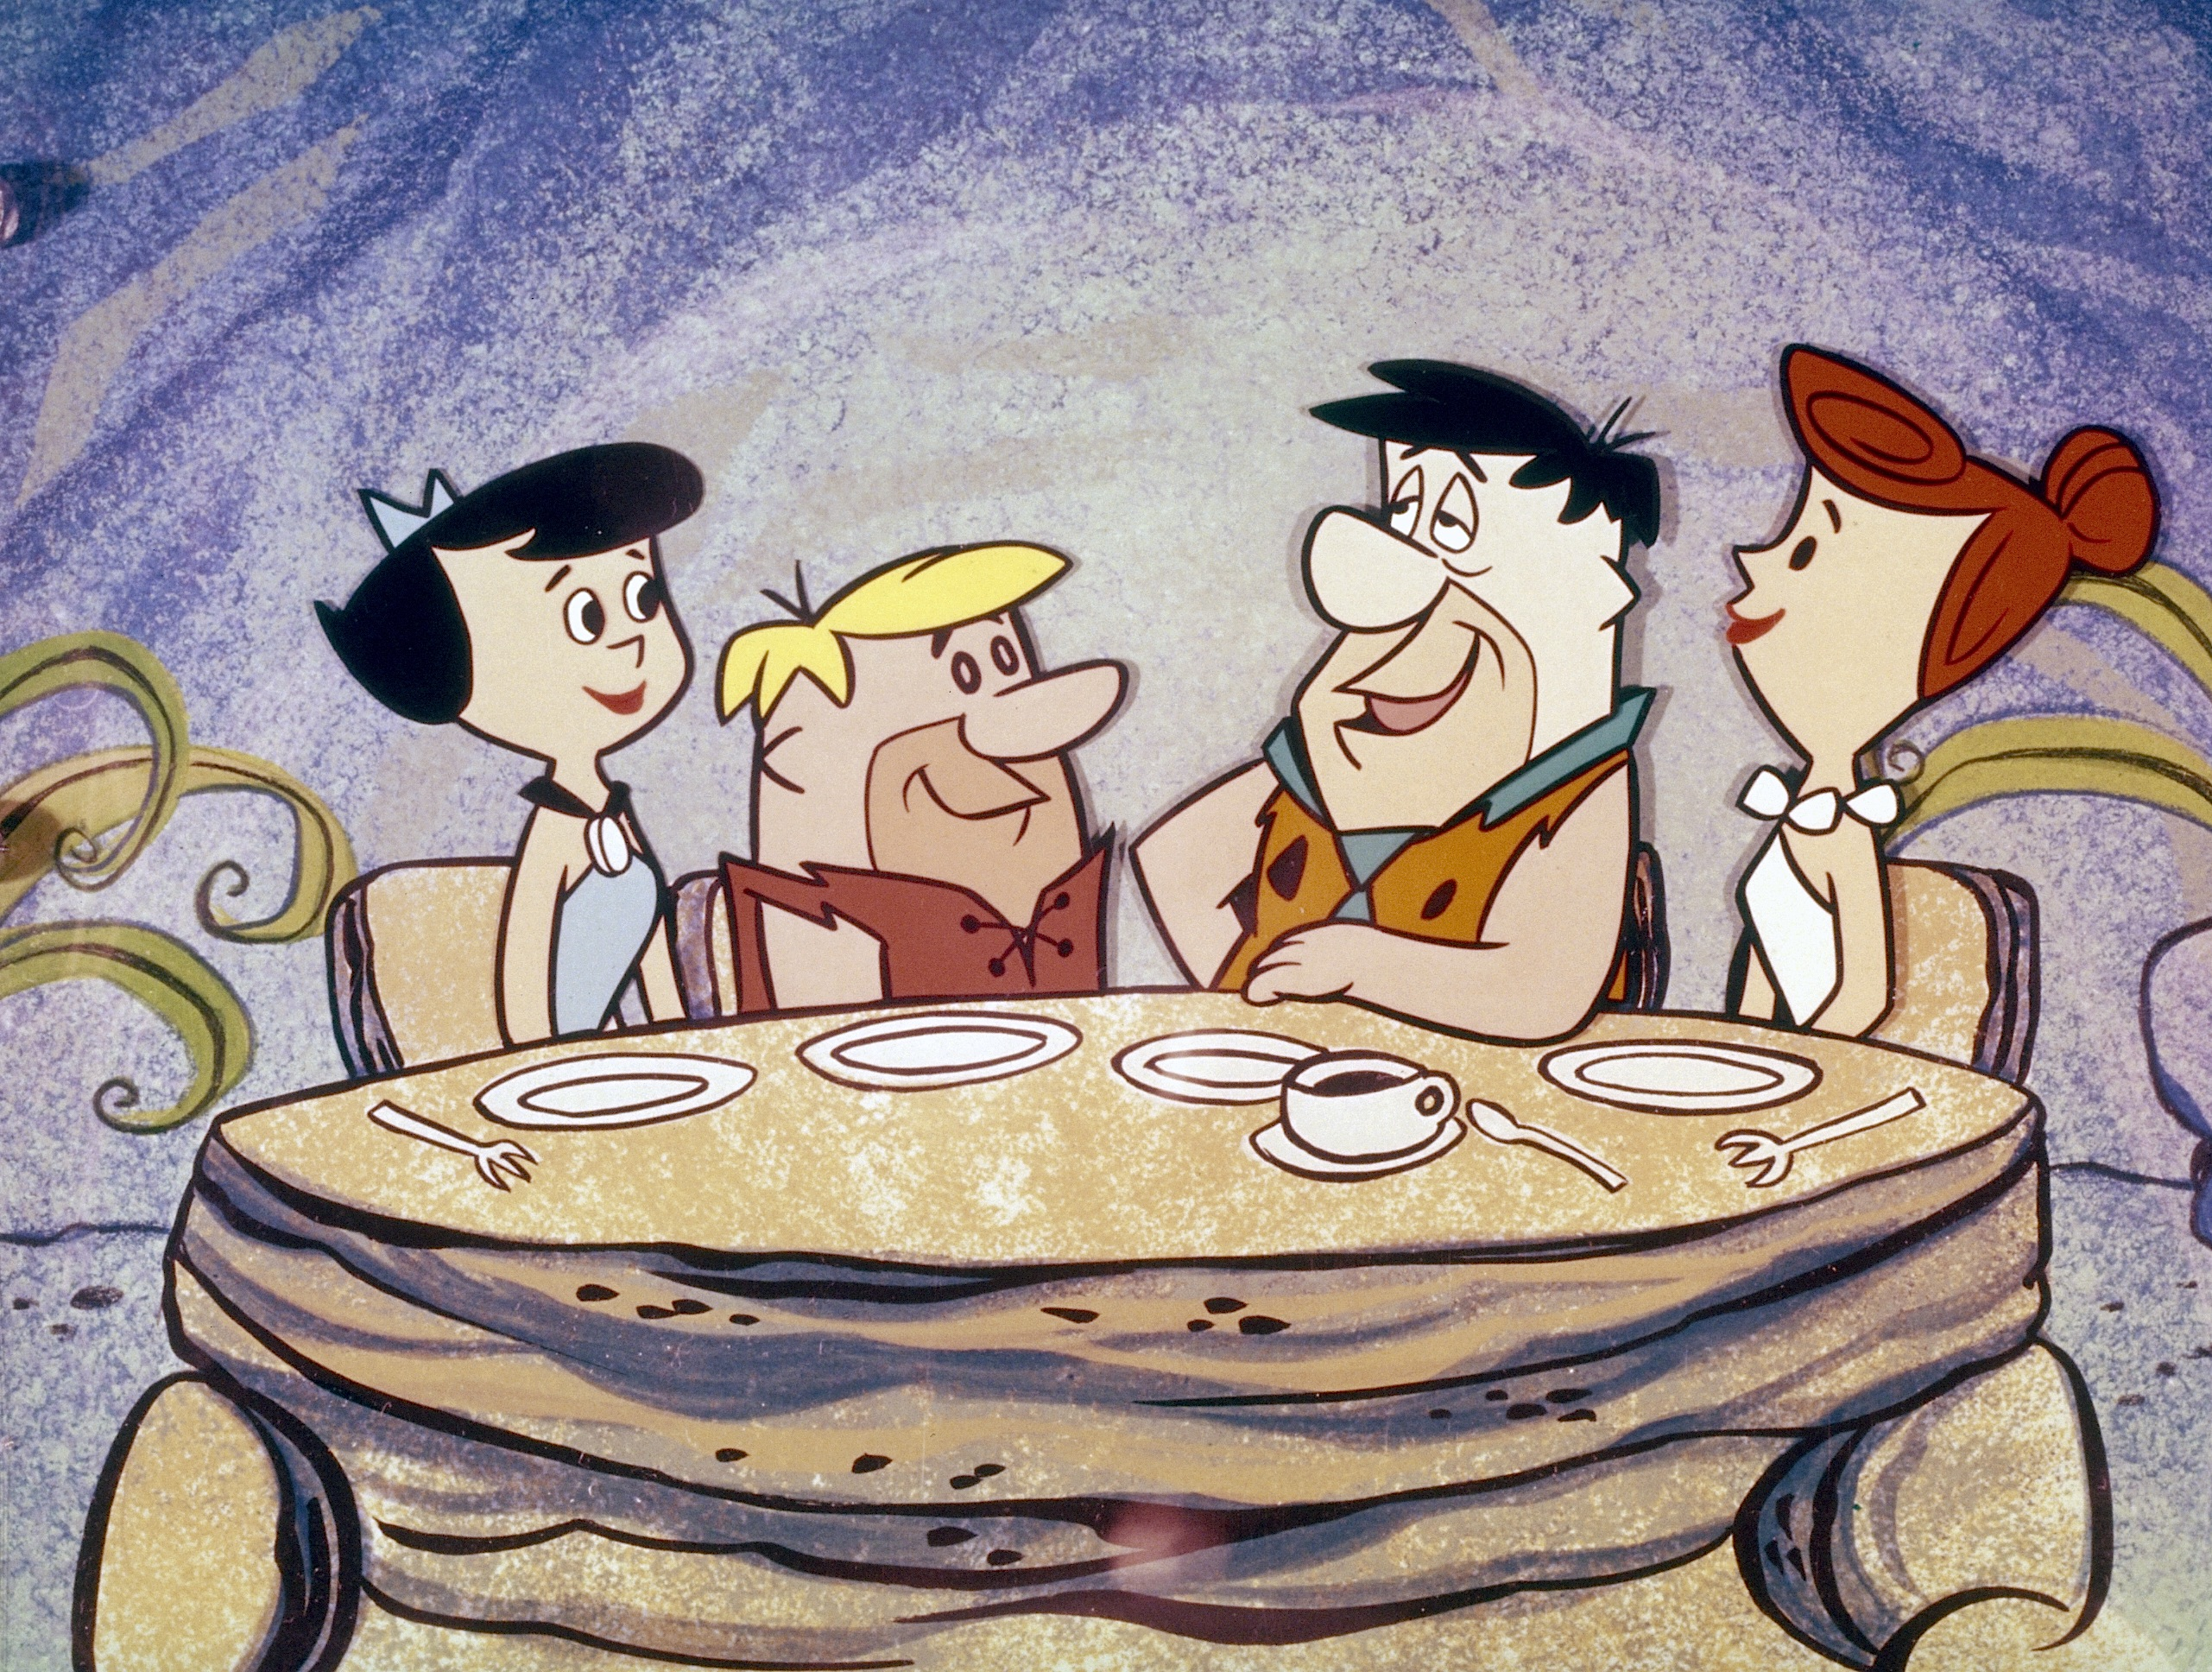 THE FLINTSTONES - 9/30/60-4/1/66 Betty Rubble, Barney Rubble, Fred Flintstone, Wilma Flintstone (AMERICAN BROADCASTING COMPANIES, INC.)